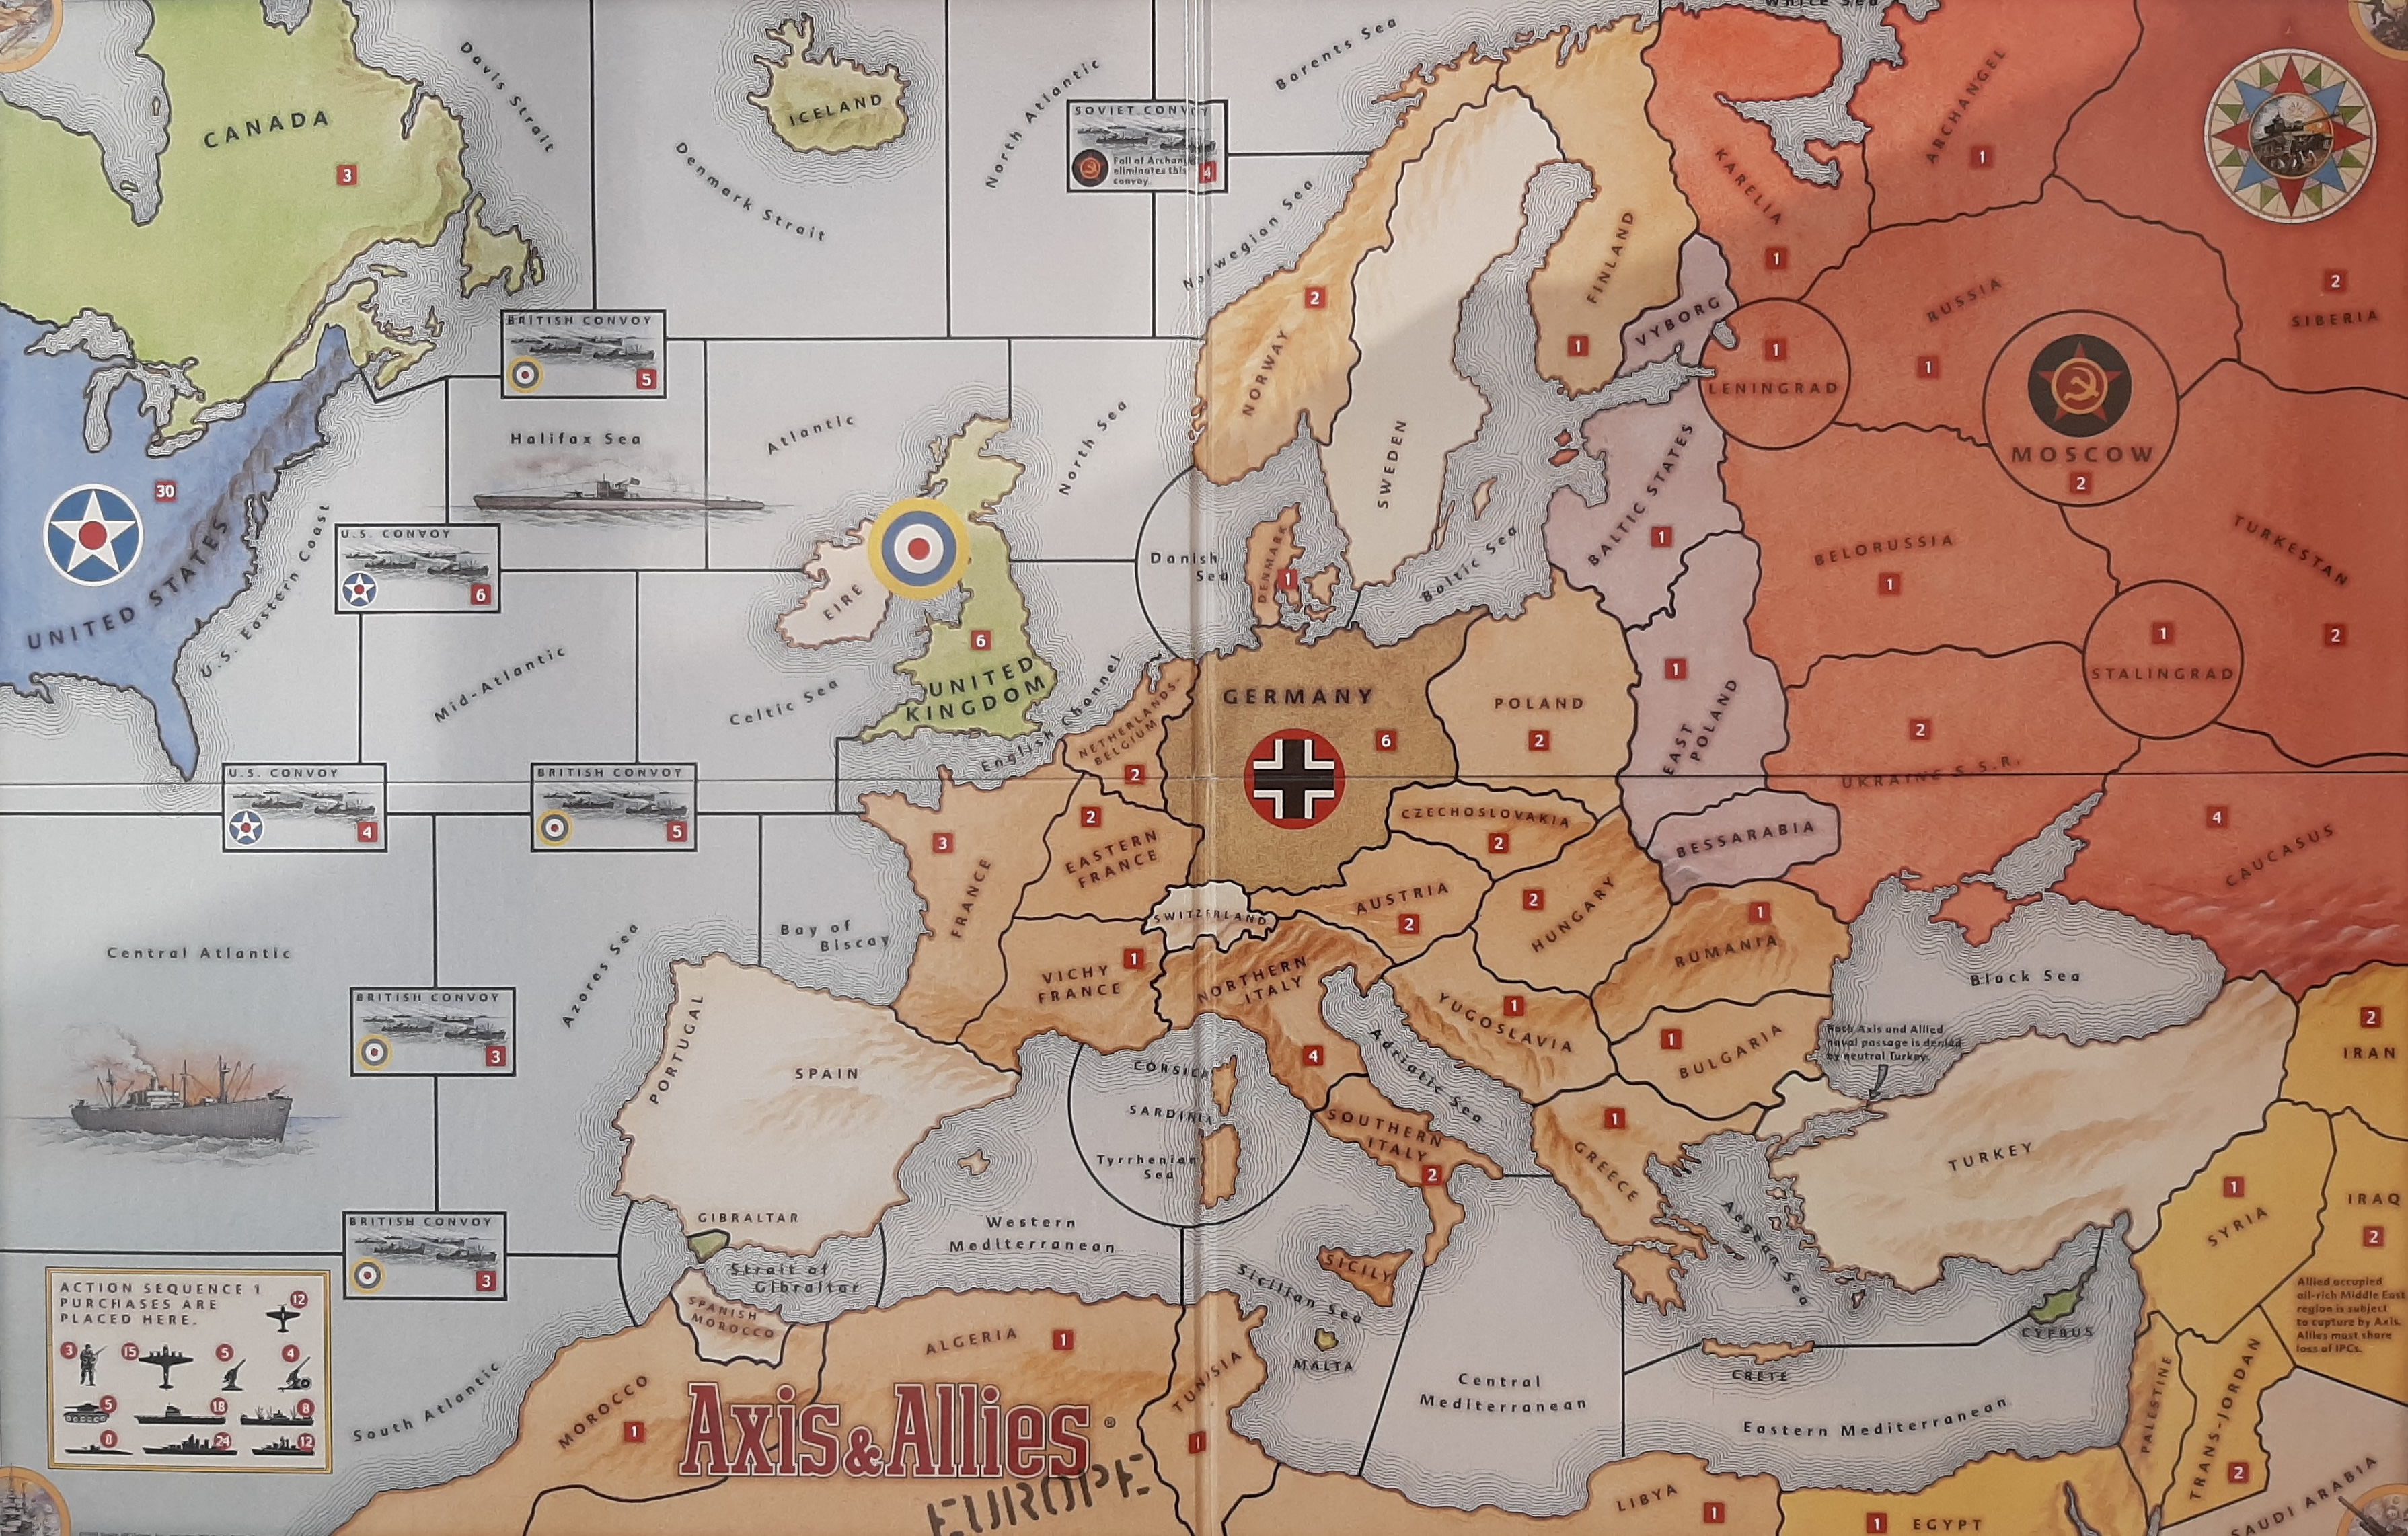 axis and allies europe map Axis & Allies Europe Map: Game board  and PDF